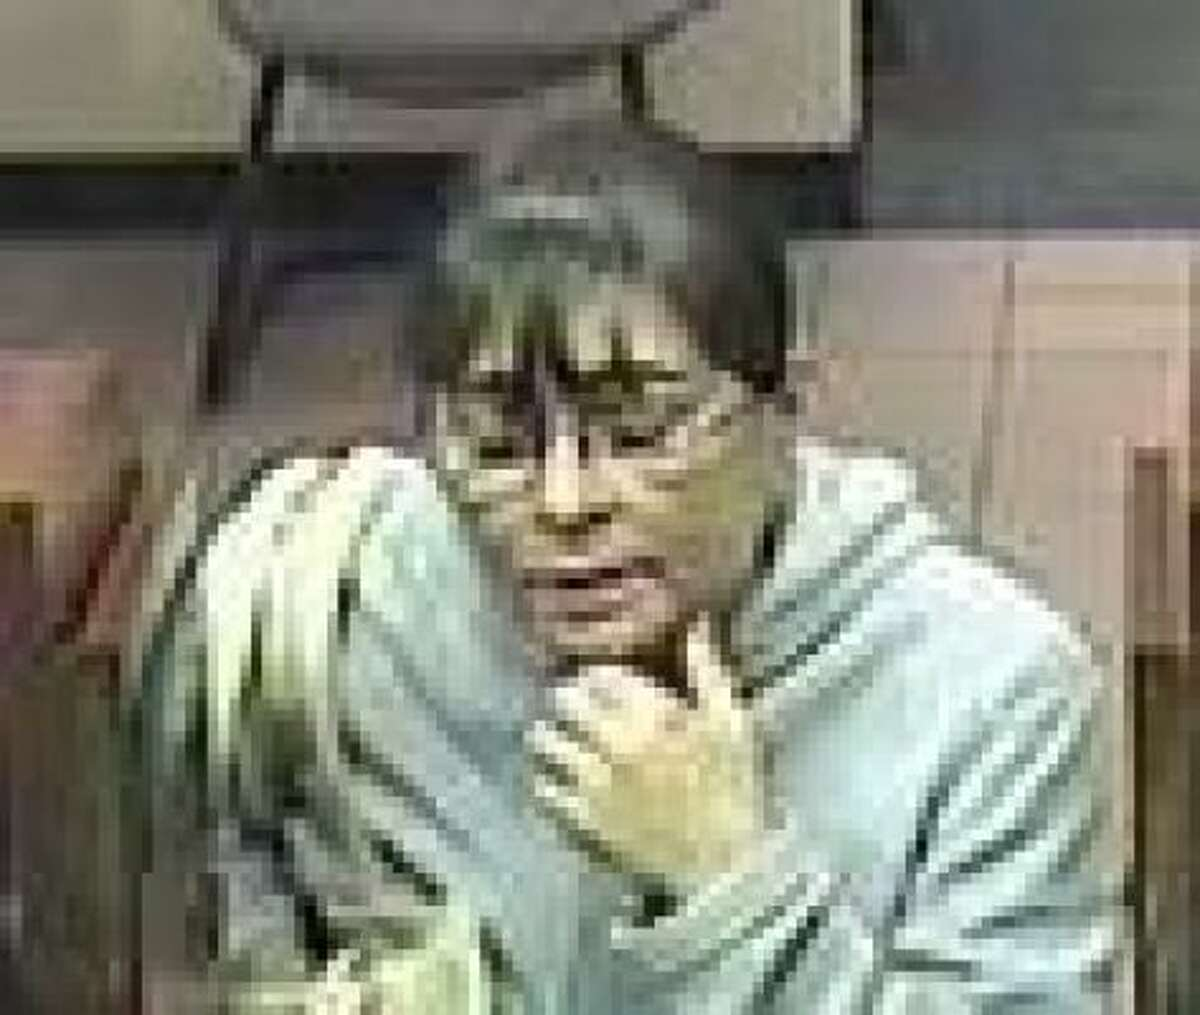 This woman is suspected of robbing a west Houston bank twice in the last two months, the FBI said.